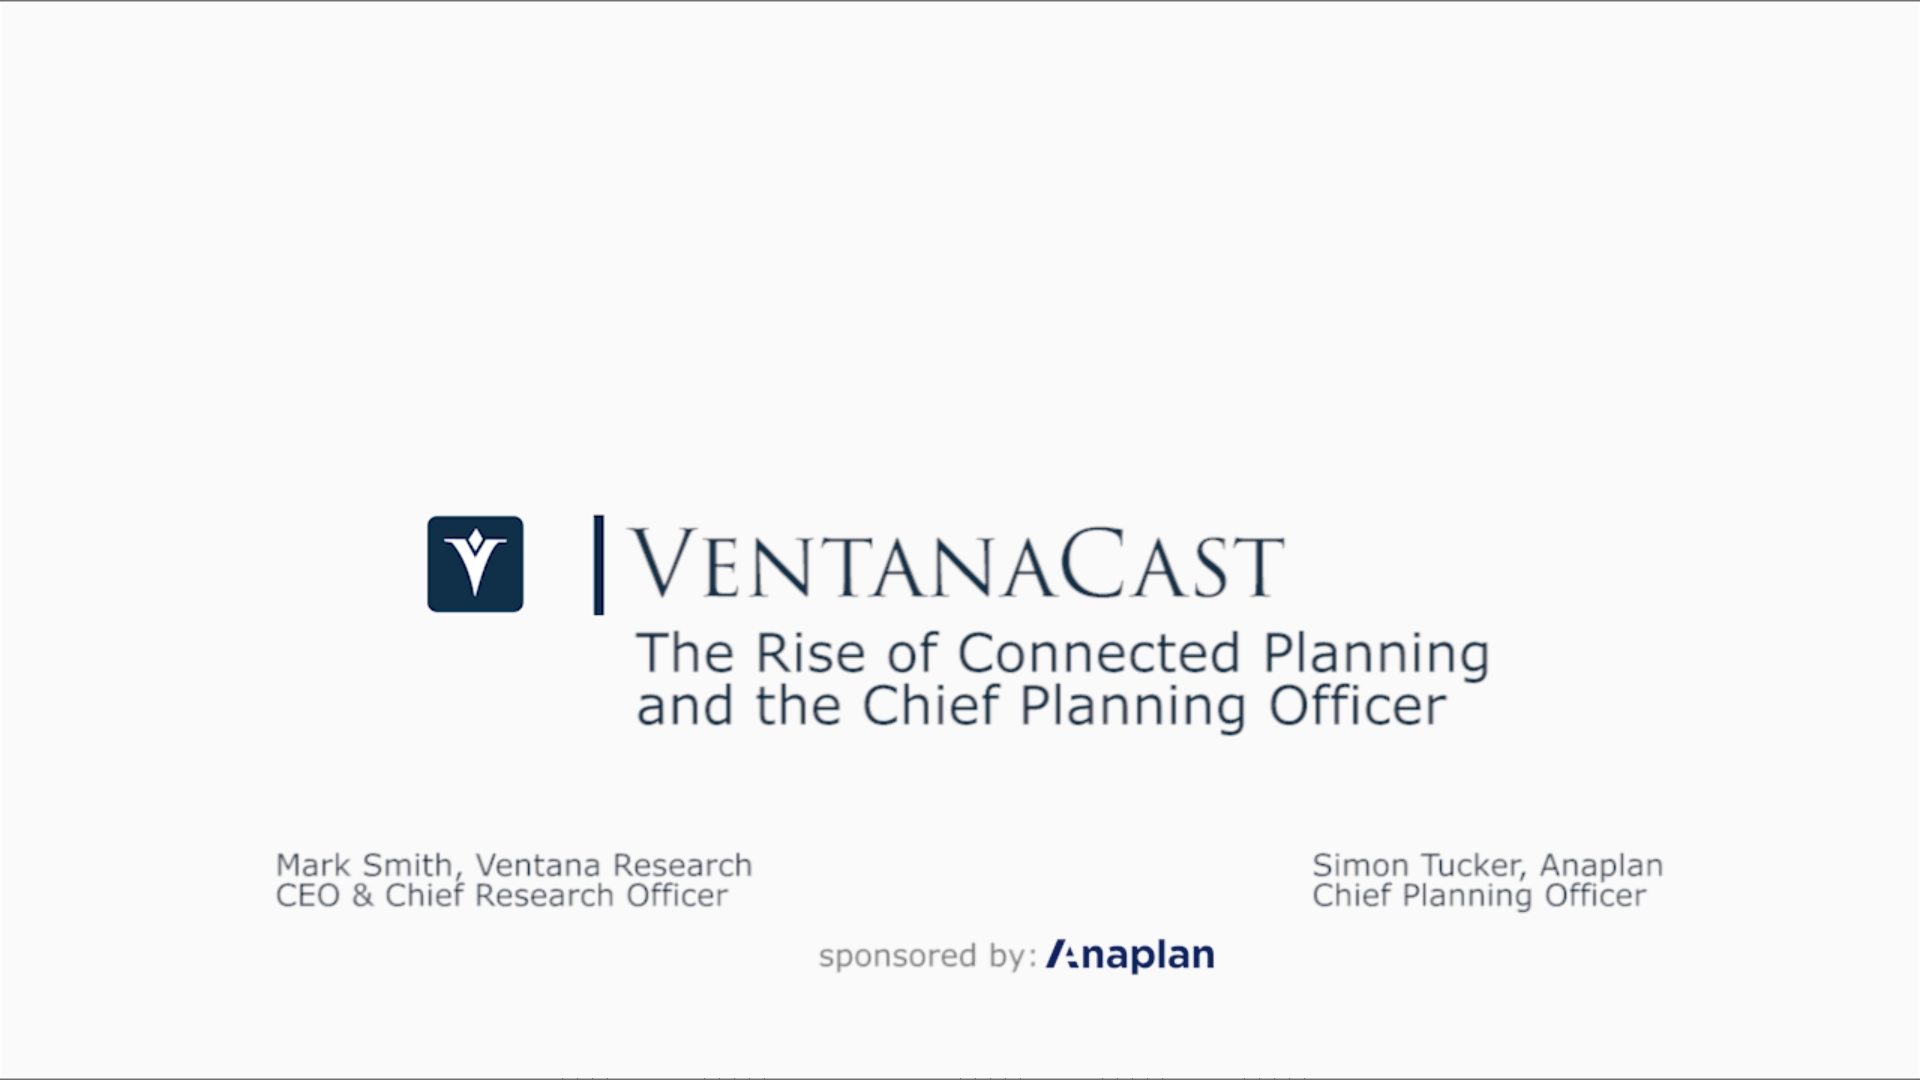 Ventana Research Videocast Connected Planning (Anaplan #1903-0741-01VID)